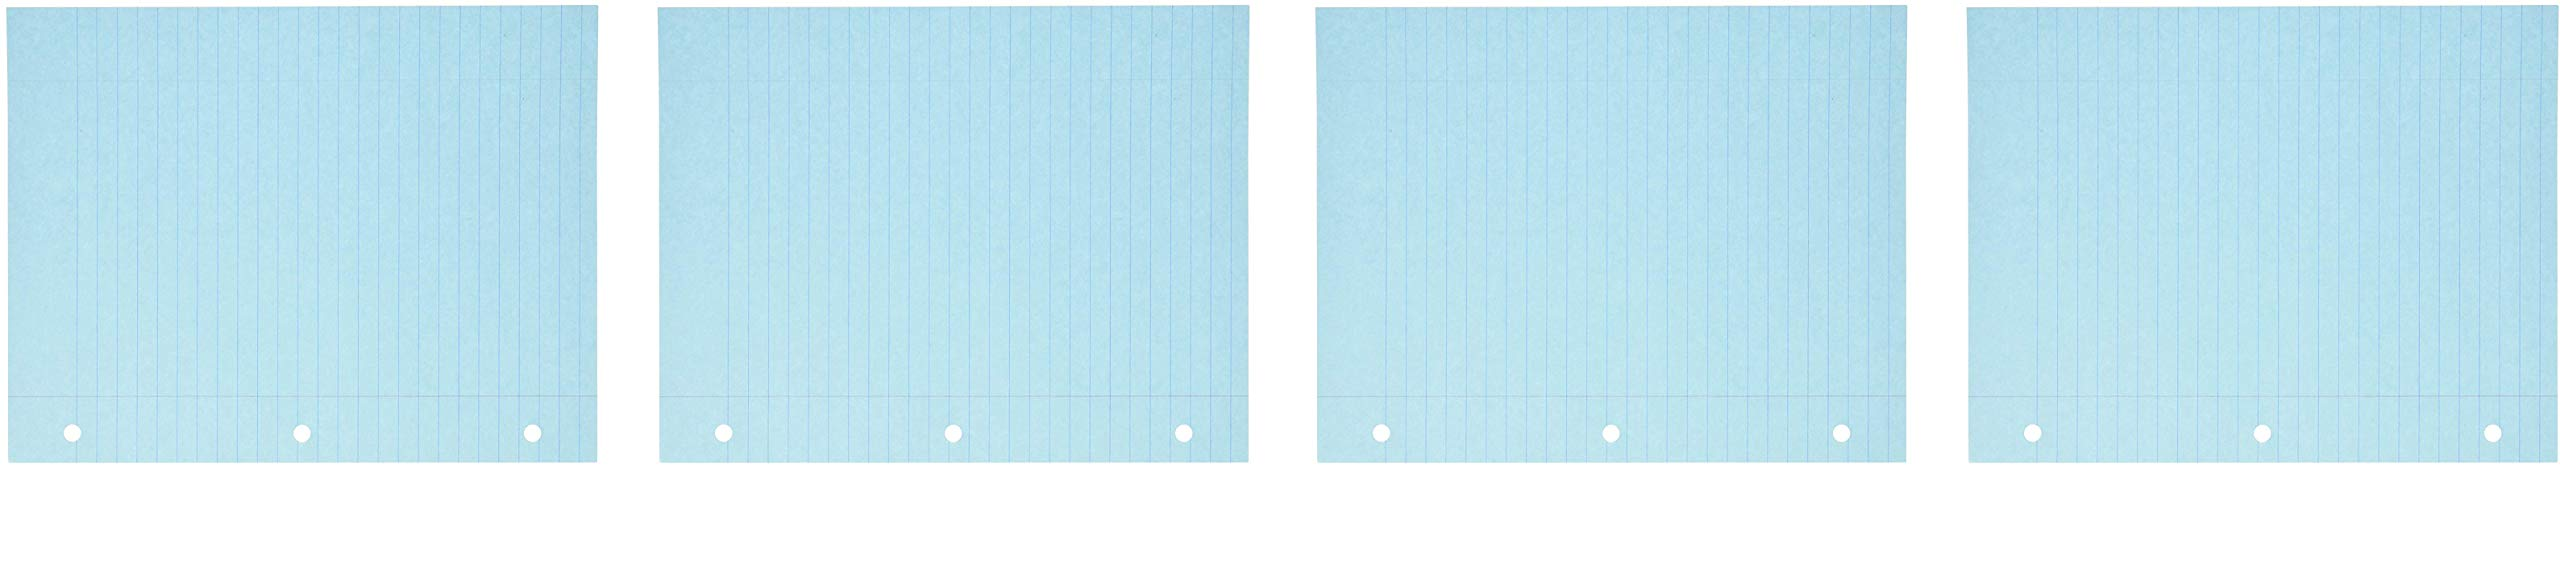 School Smart 3-Hole Punched Filler Paper, 8-1/2 x 11 Inches, Blue, 100 Sheets (4-Pack) by School Smart (Image #1)